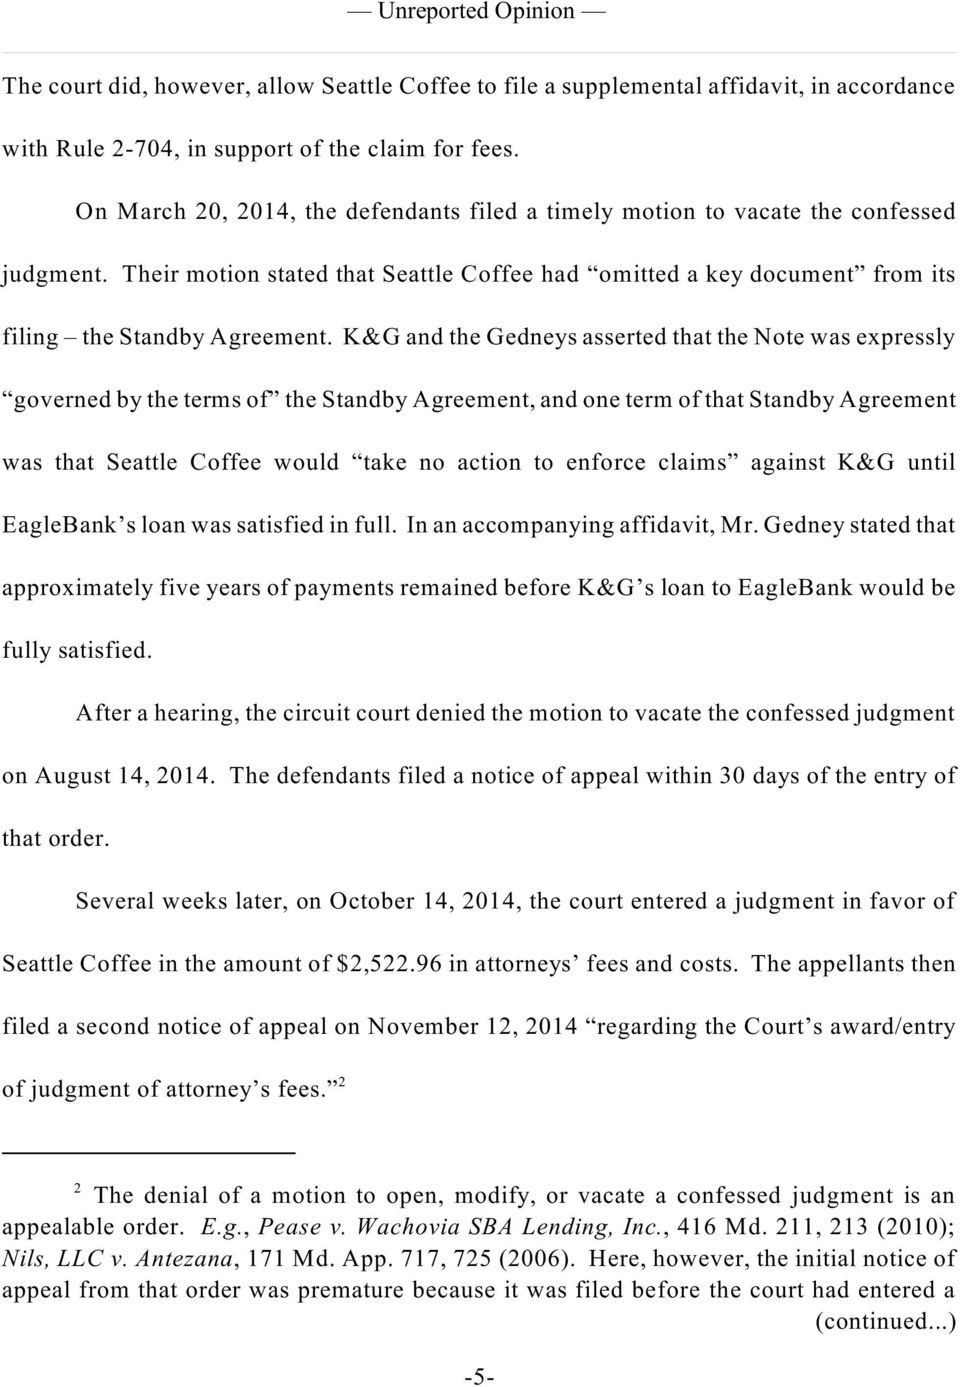 K&G and the Gedneys asserted that the Note was expressly governed by the terms of the Standby Agreement, and one term of that Standby Agreement was that Seattle Coffee would take no action to enforce